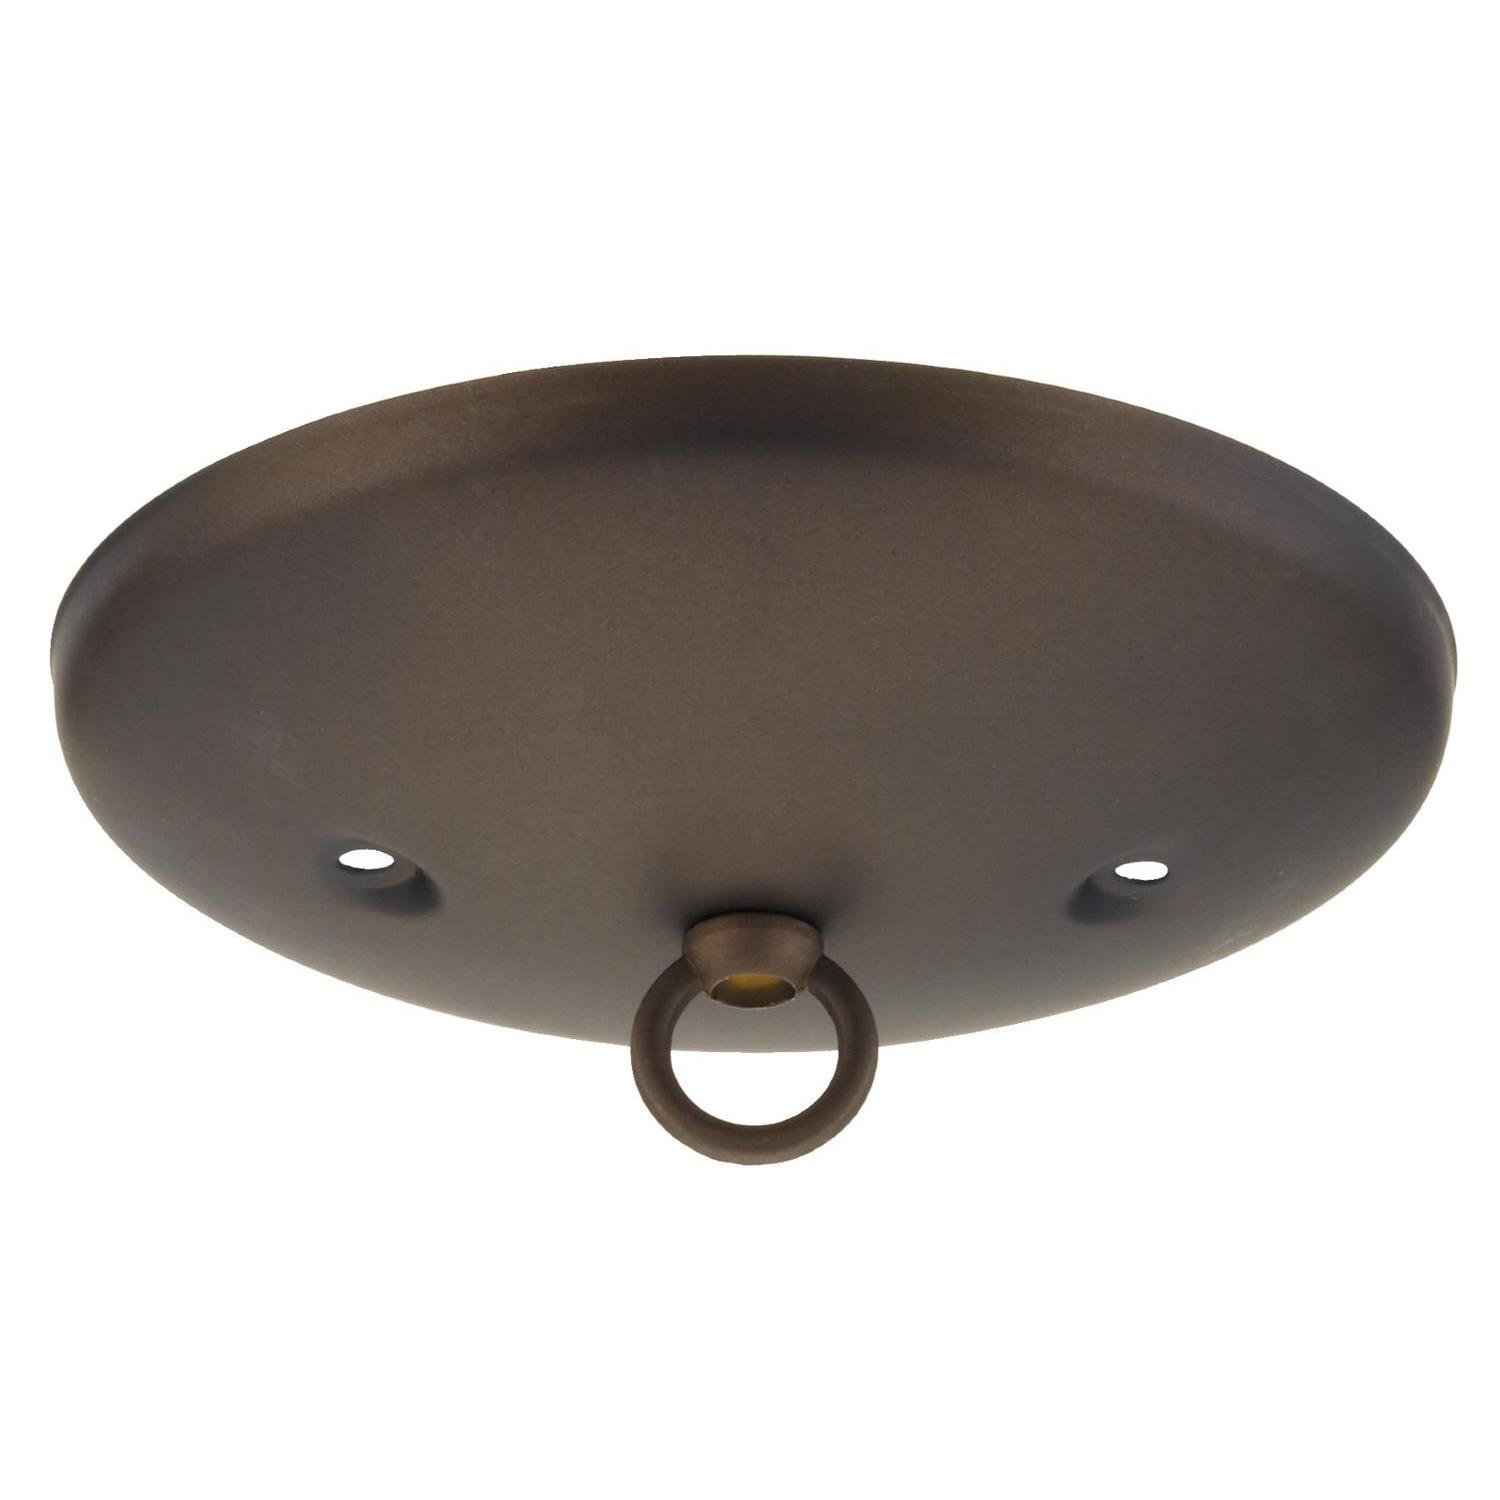 Amazon.com Wellington 7003800 Westinghouse Lighting Modern Canopy Kit Oil Rubbed Bronze Home Improvement  sc 1 st  Amazon.com & Amazon.com: Wellington 7003800 Westinghouse Lighting Modern Canopy ...